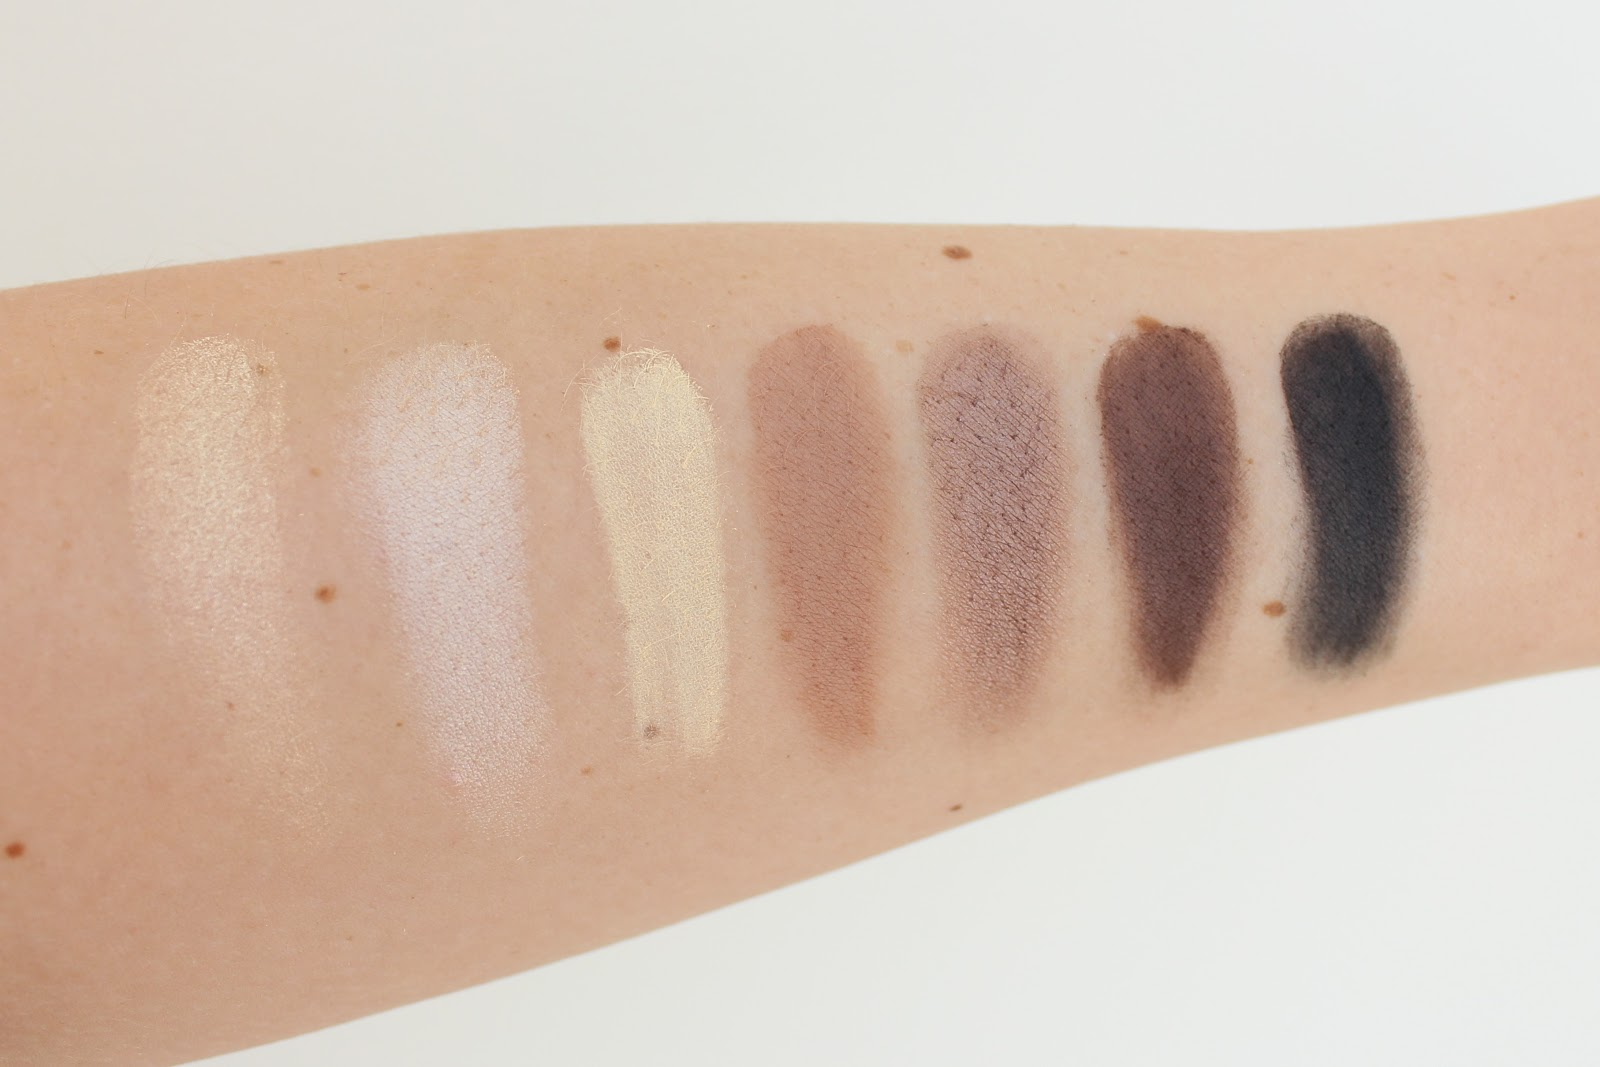 Inglot Neutral Smokey Palette Review and Swatches